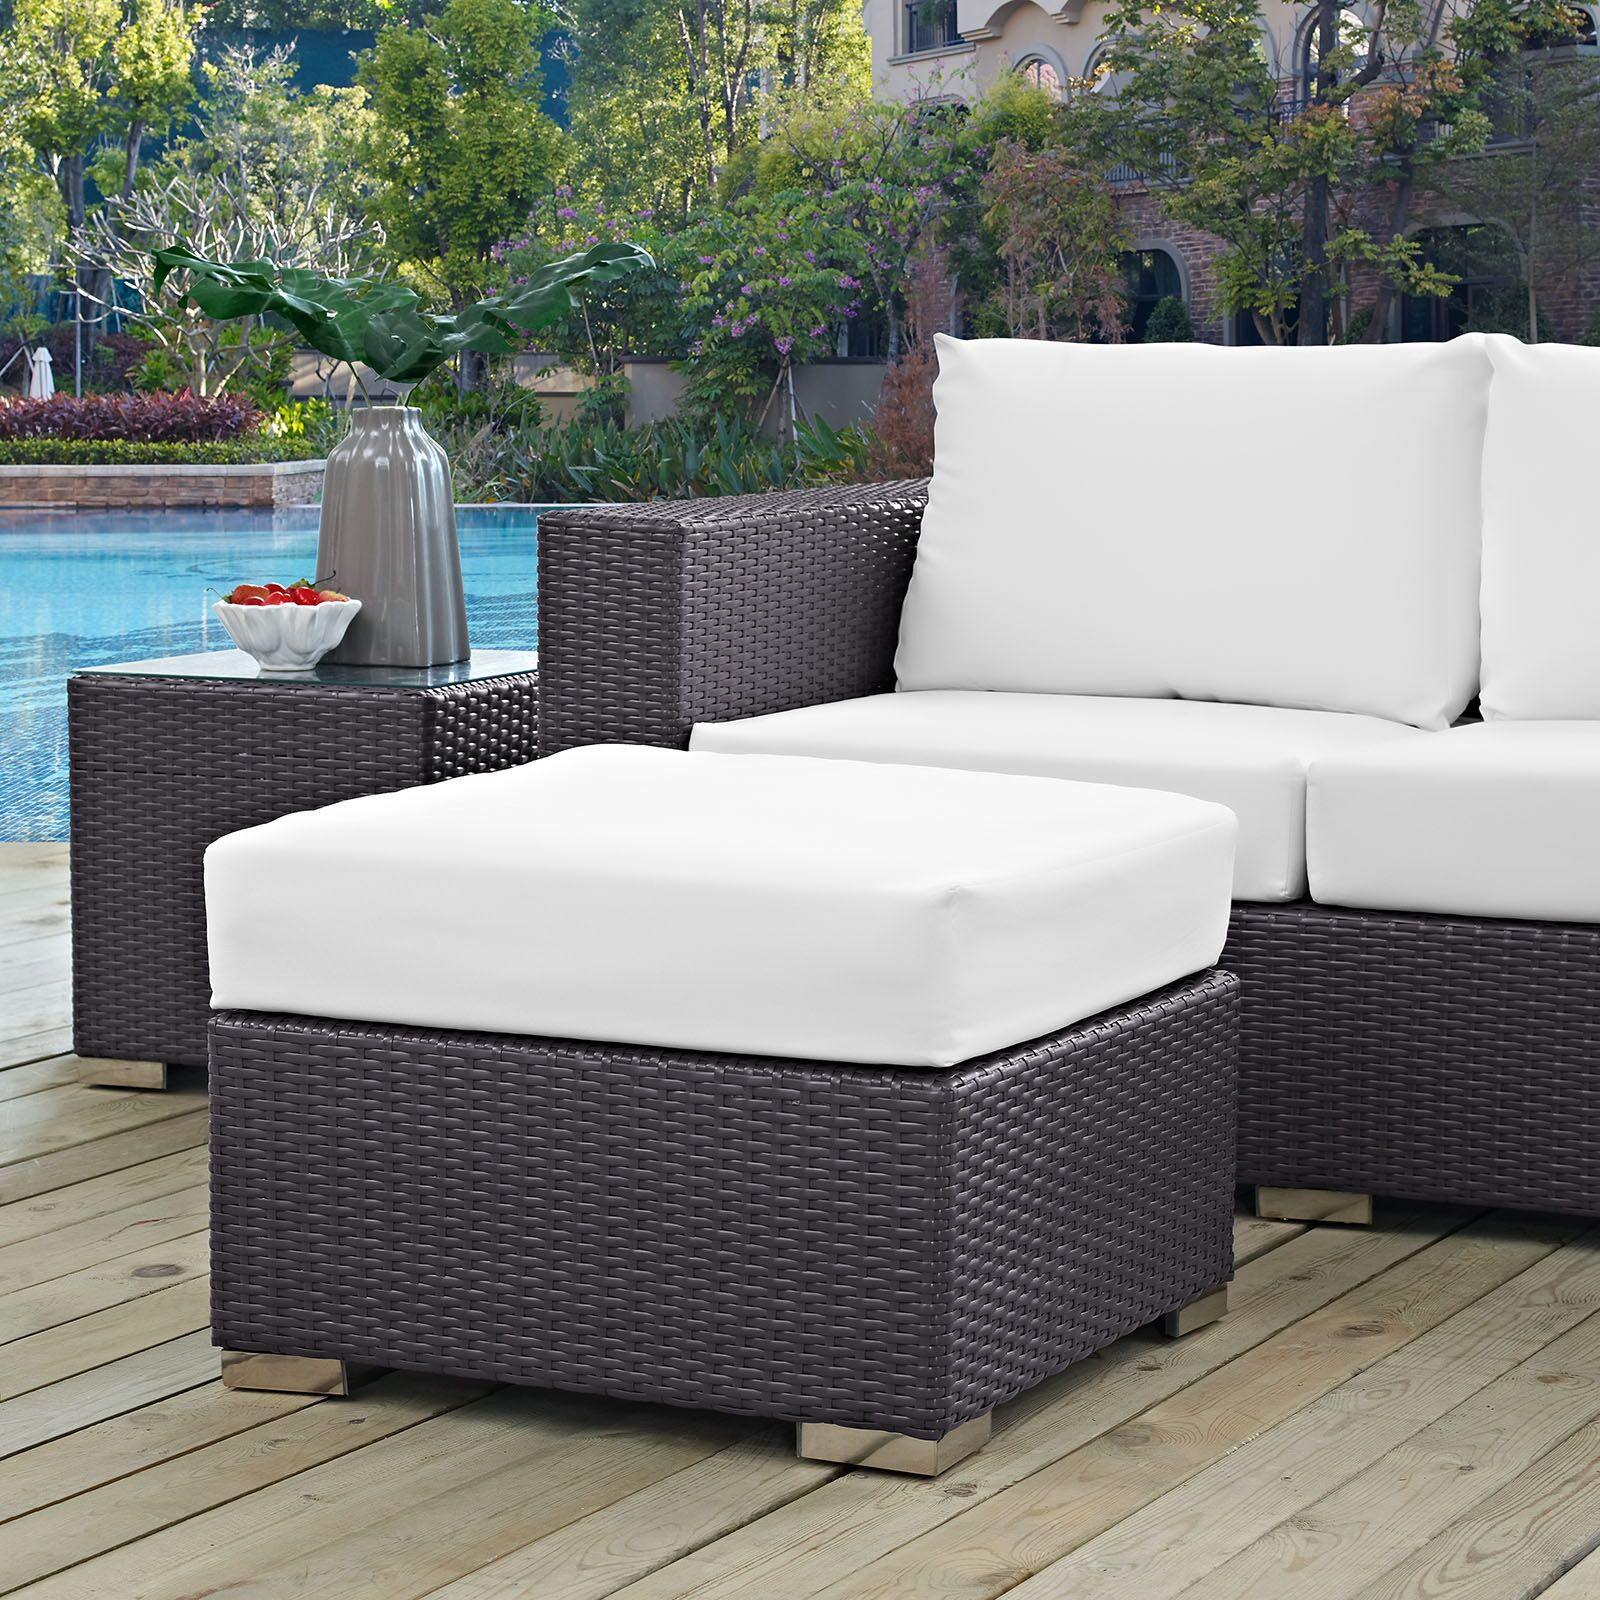 Ryele Outdoor Ottoman with Cushion Fabric: White